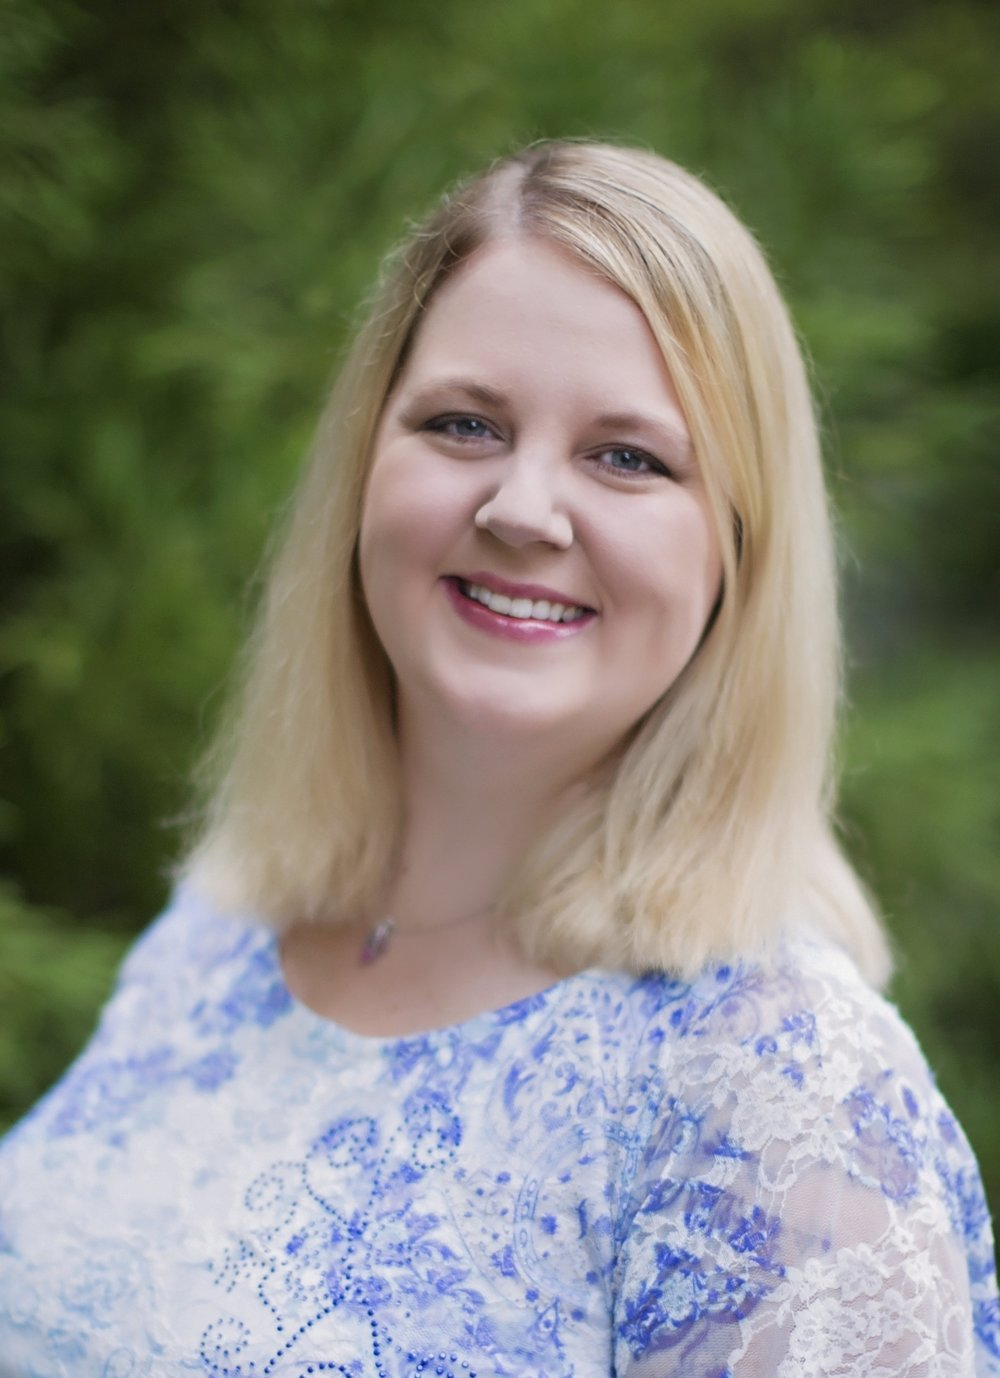 Abby is part of a birth Doula Team Who Share Call in Fayette. Both she and Julie Trotter work as a doula duo in PEACHTREE CITY and Newnan. She is Certified with Birth Boot Camp DOULAS and is a Breastfeeding Counselor in Atlanta.